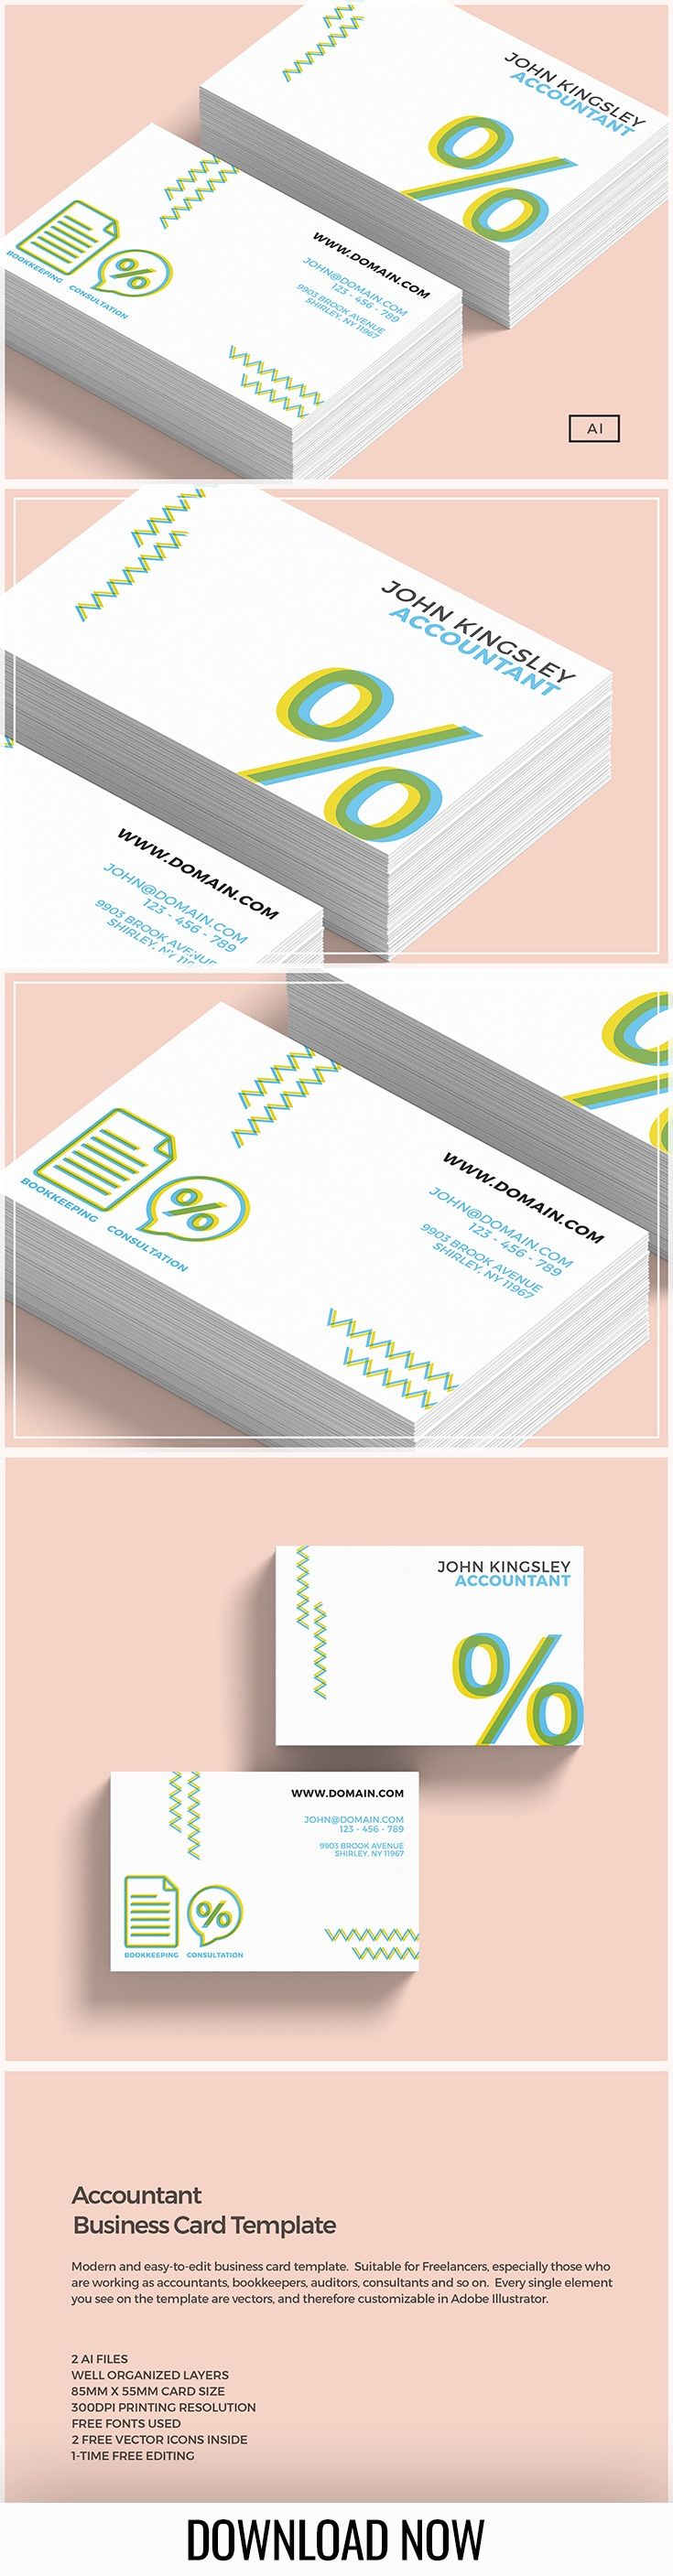 85 best Business Card Ideas images on Pinterest | Name cards ...